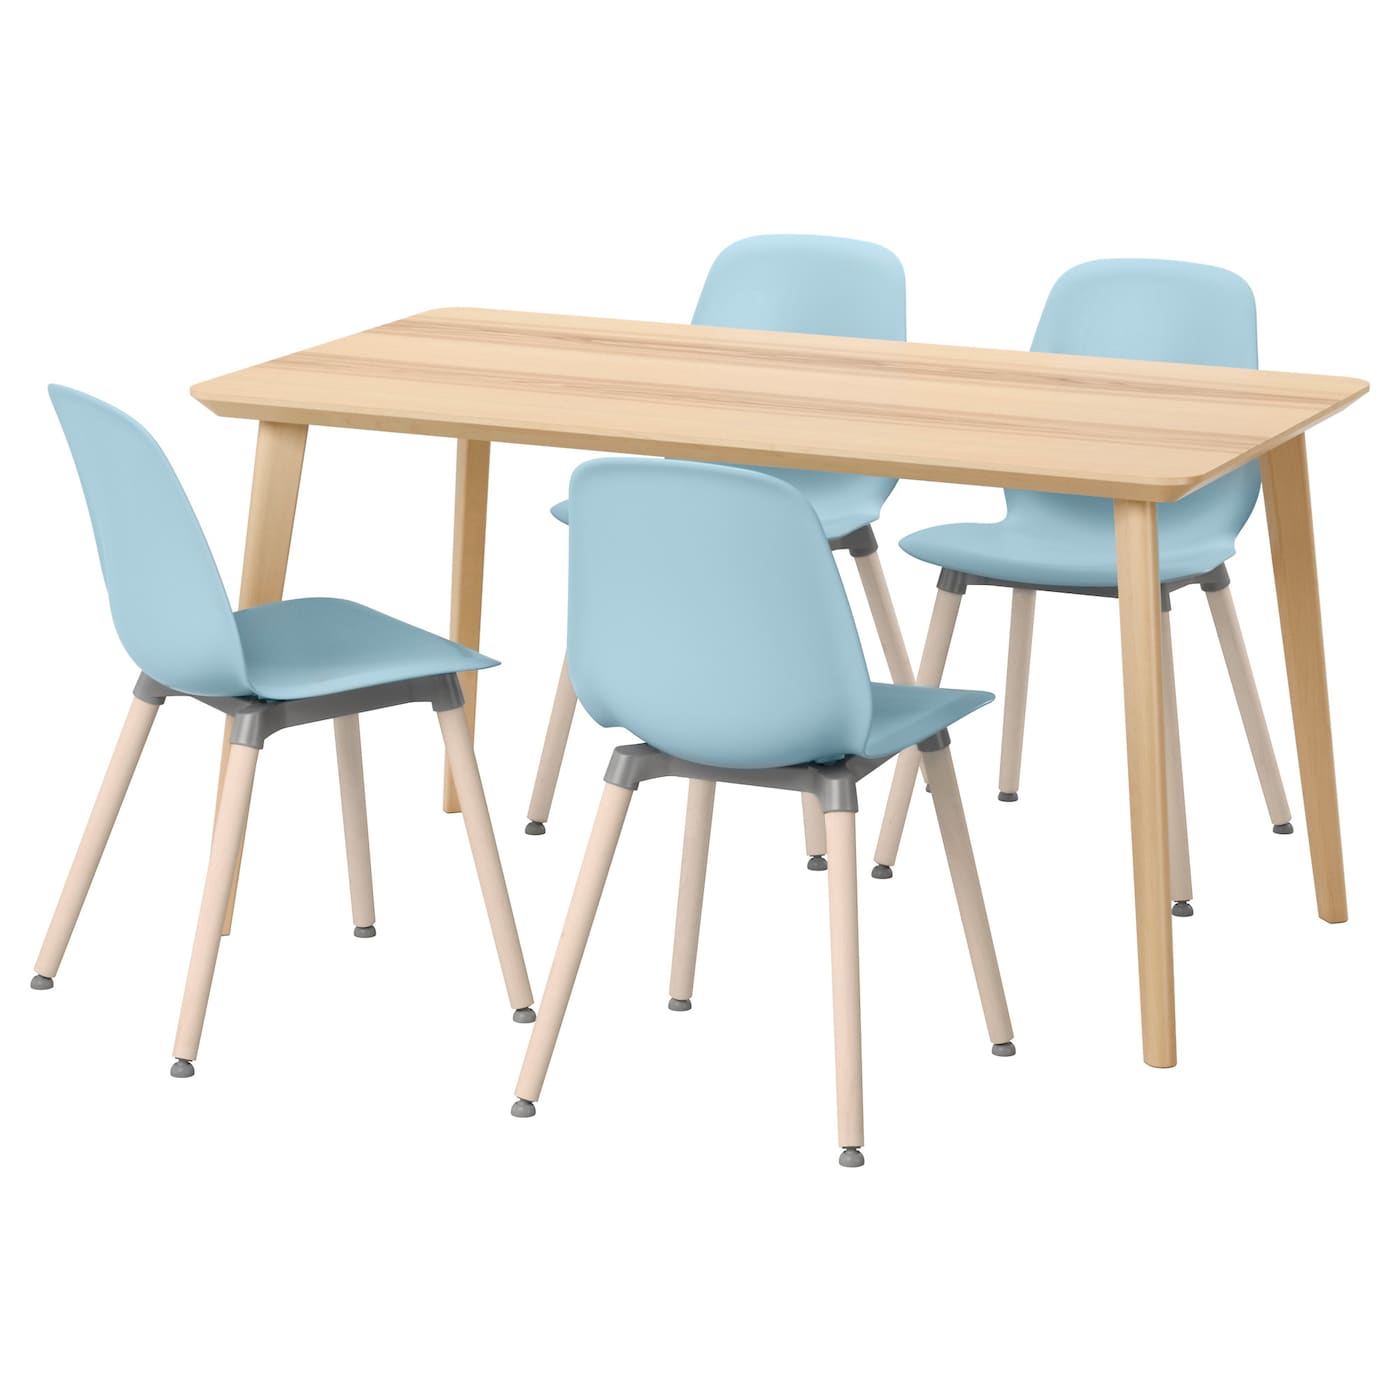 Leifarne lisabo table and 4 chairs ash veneer light blue for Table chaise ikea